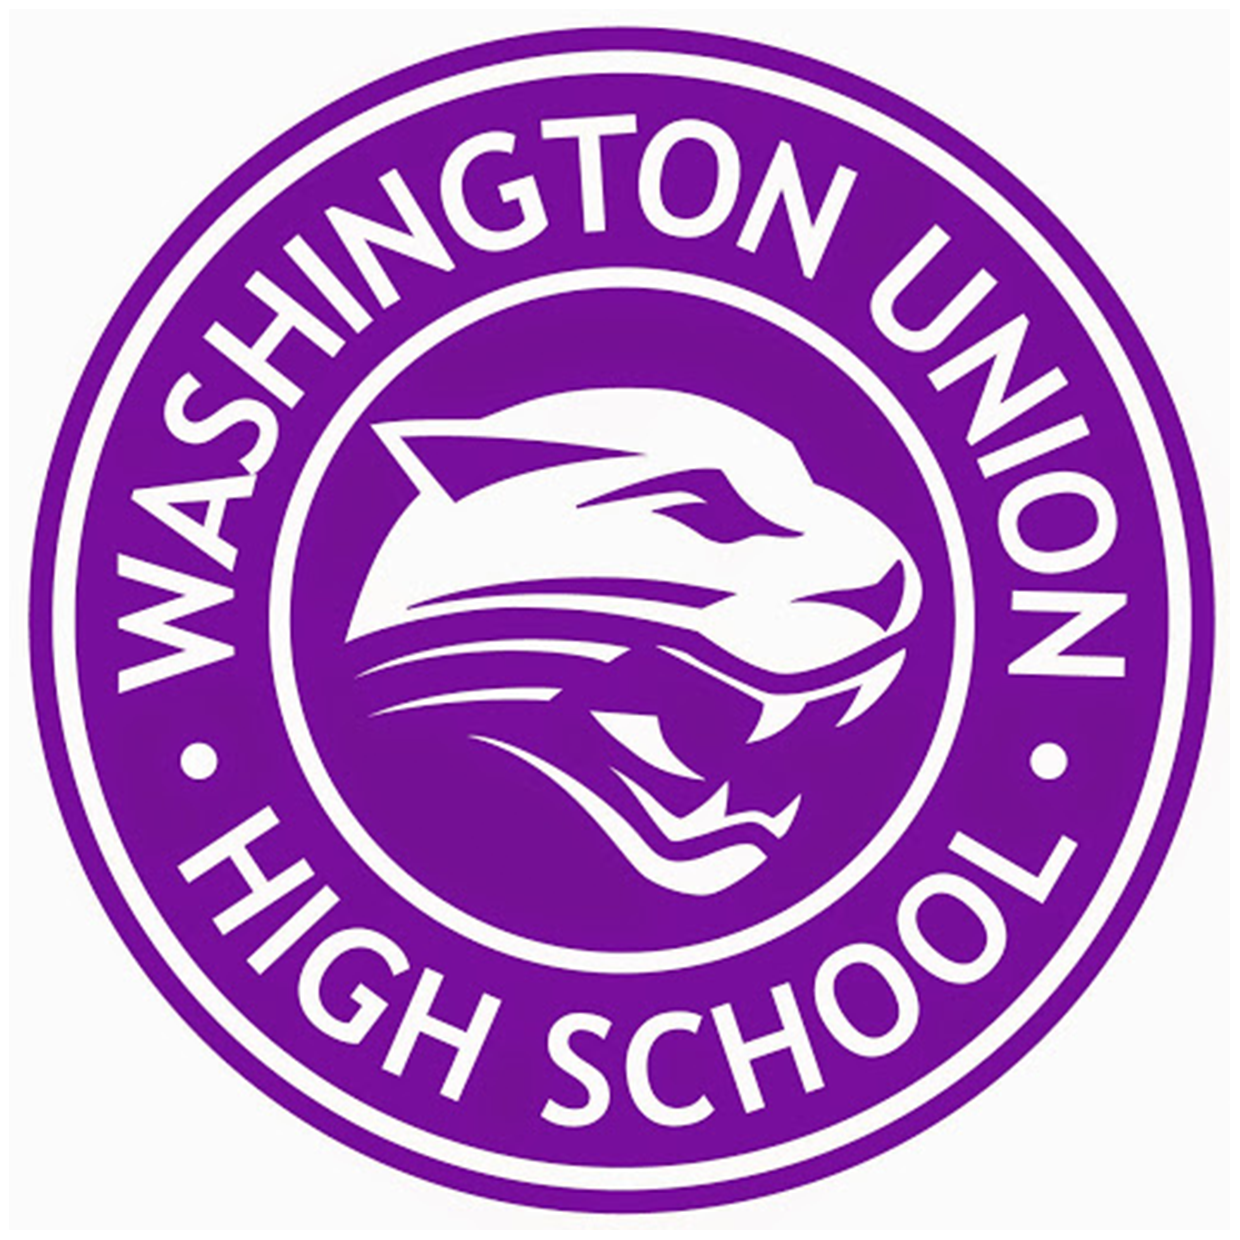 Washington Union